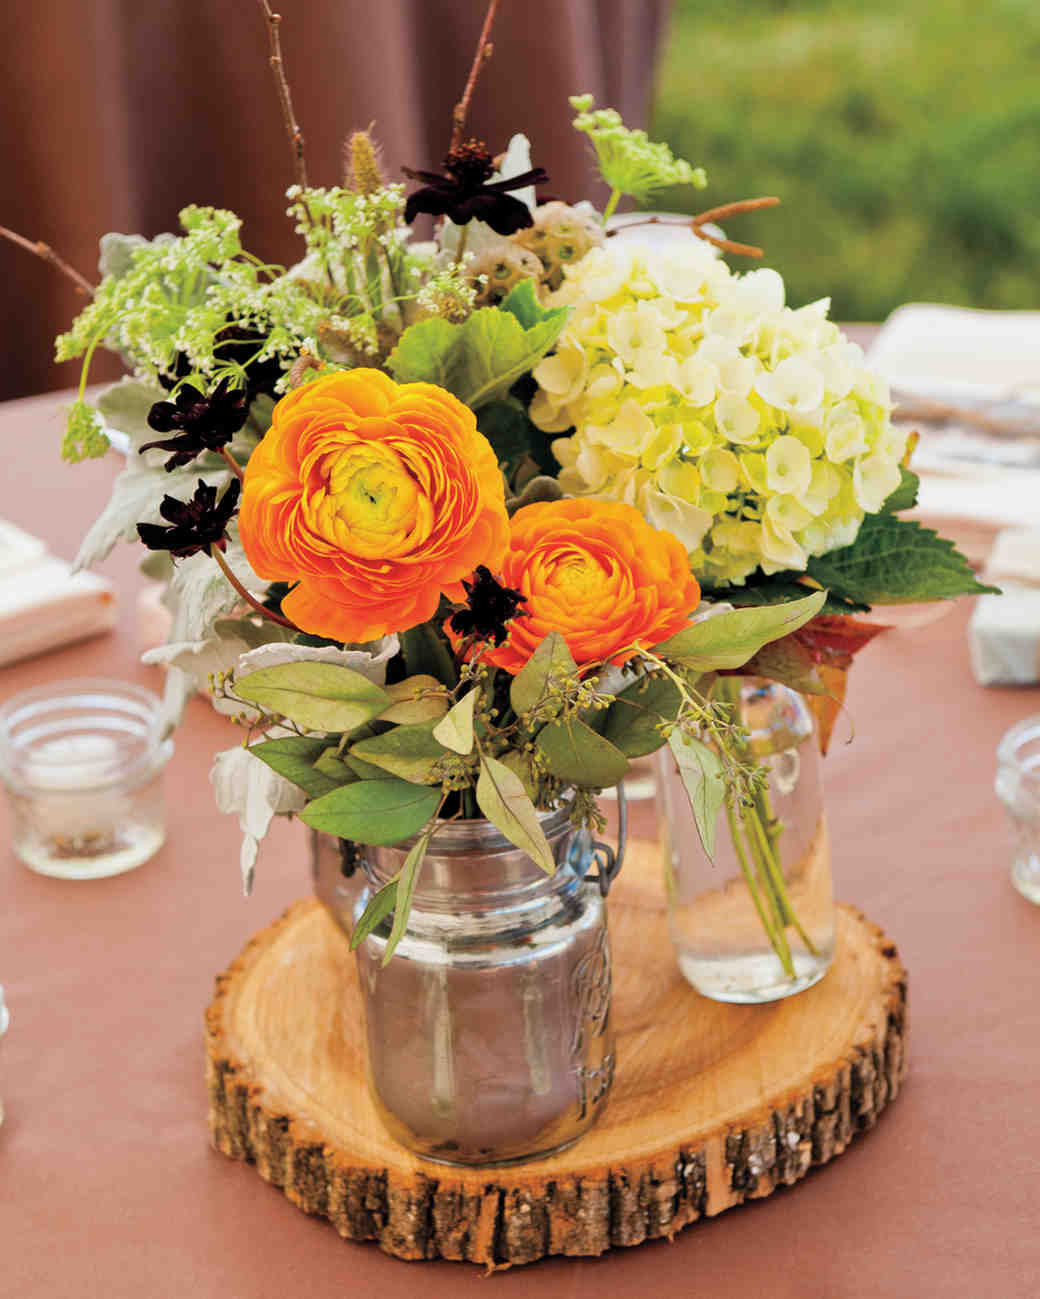 Fall Wedding Decoration Ideas On A Budget: 51 Rustic Fall Wedding Centerpieces